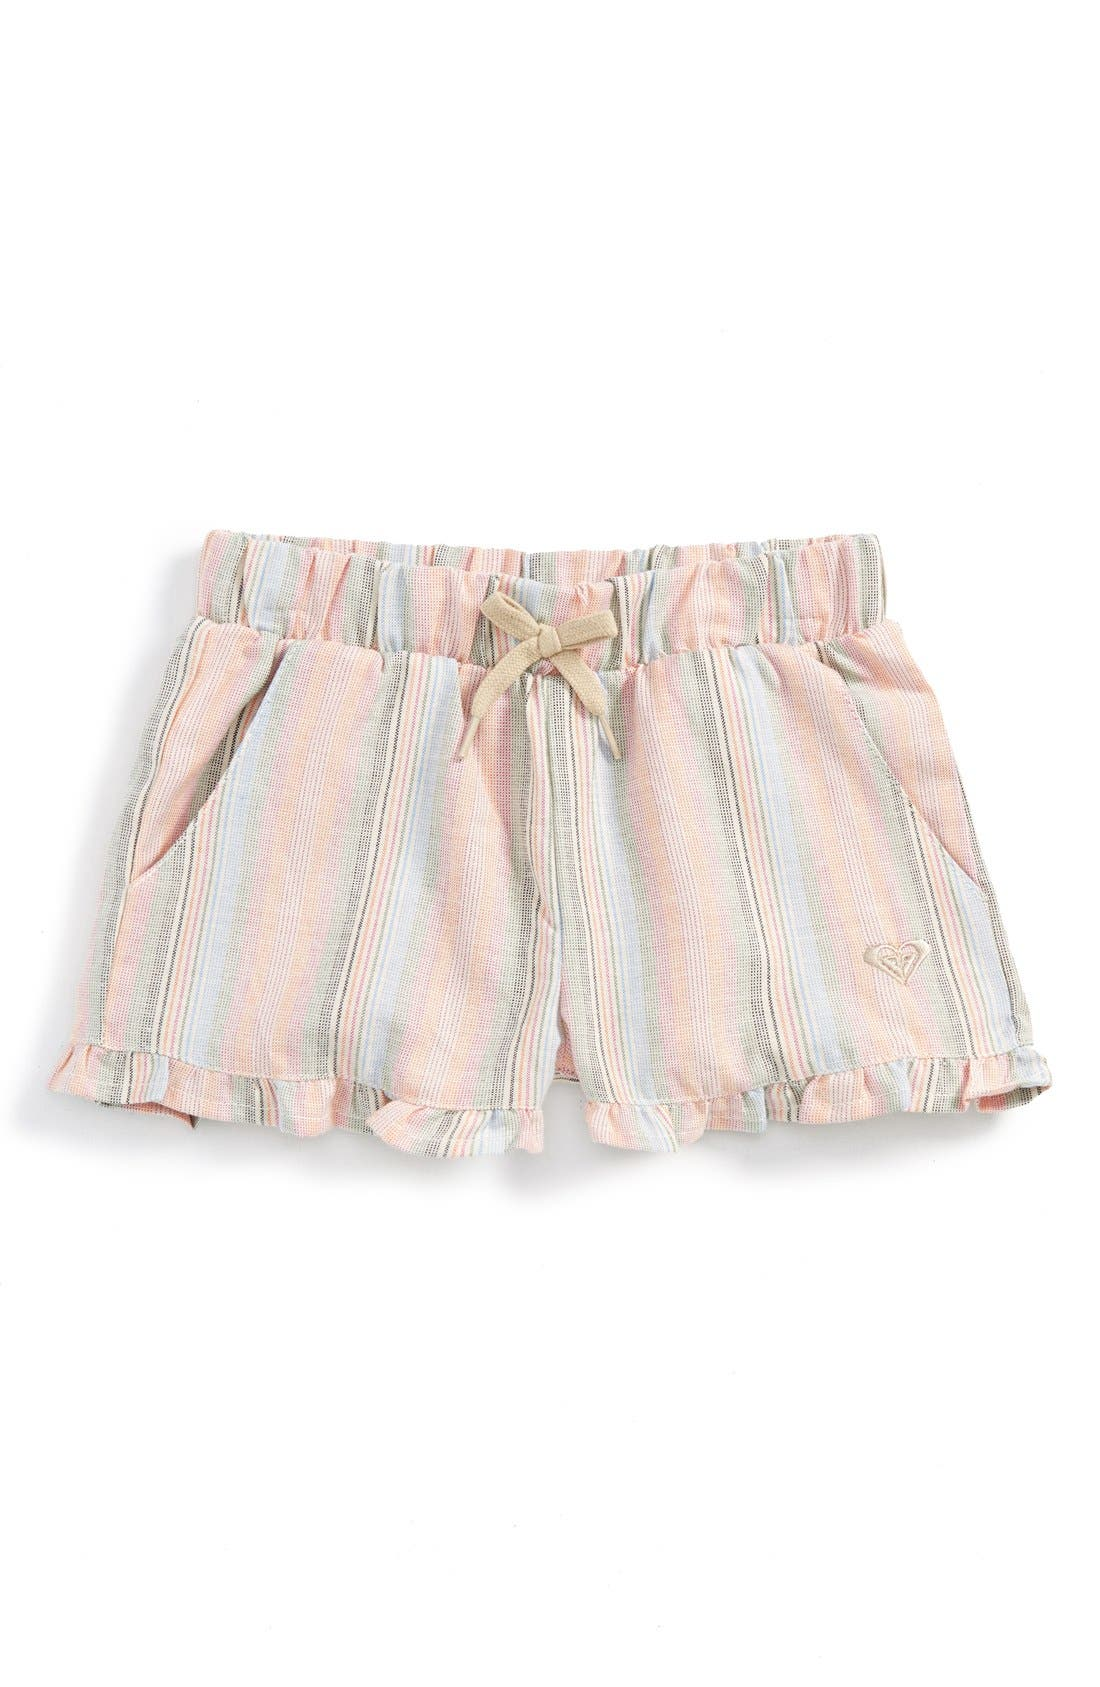 Main Image - Roxy 'Ruffled Feathers' Stripe Shorts (Baby Girls)